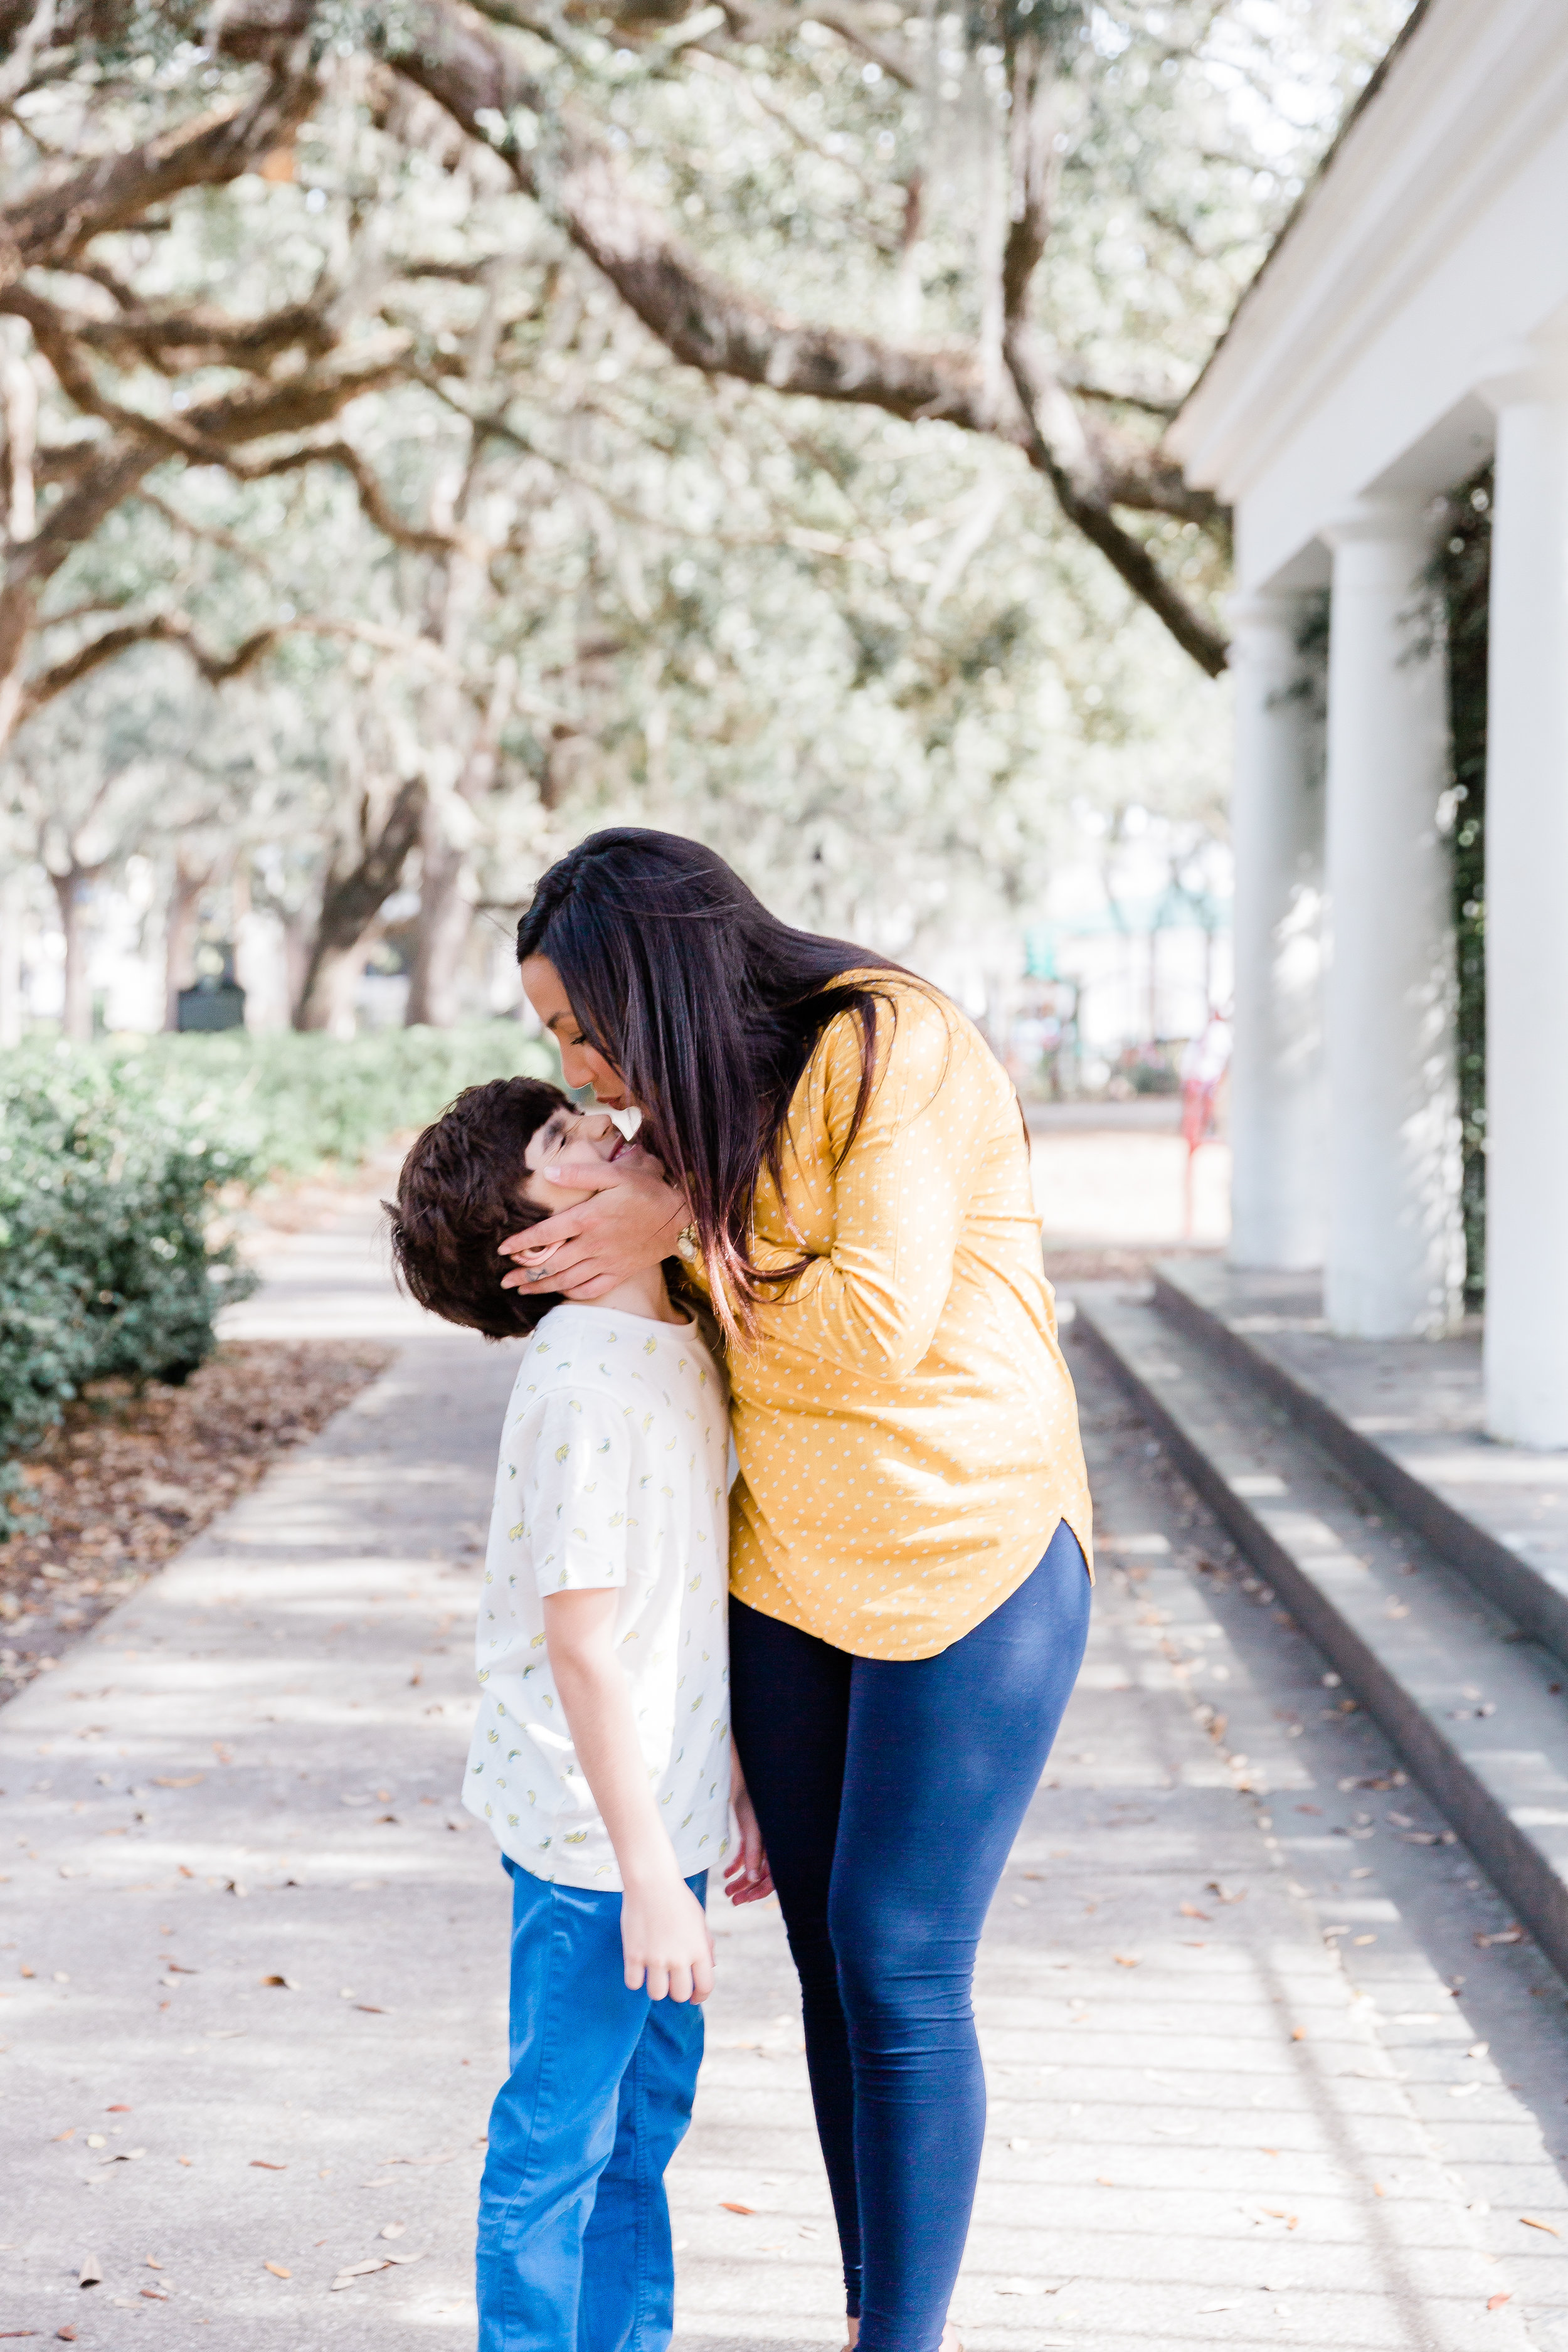 Valentines_mini_sessions_Savannah_Georgia_Photographer_Southern_Lens_Photography_Breigh_Ard_04.jpg